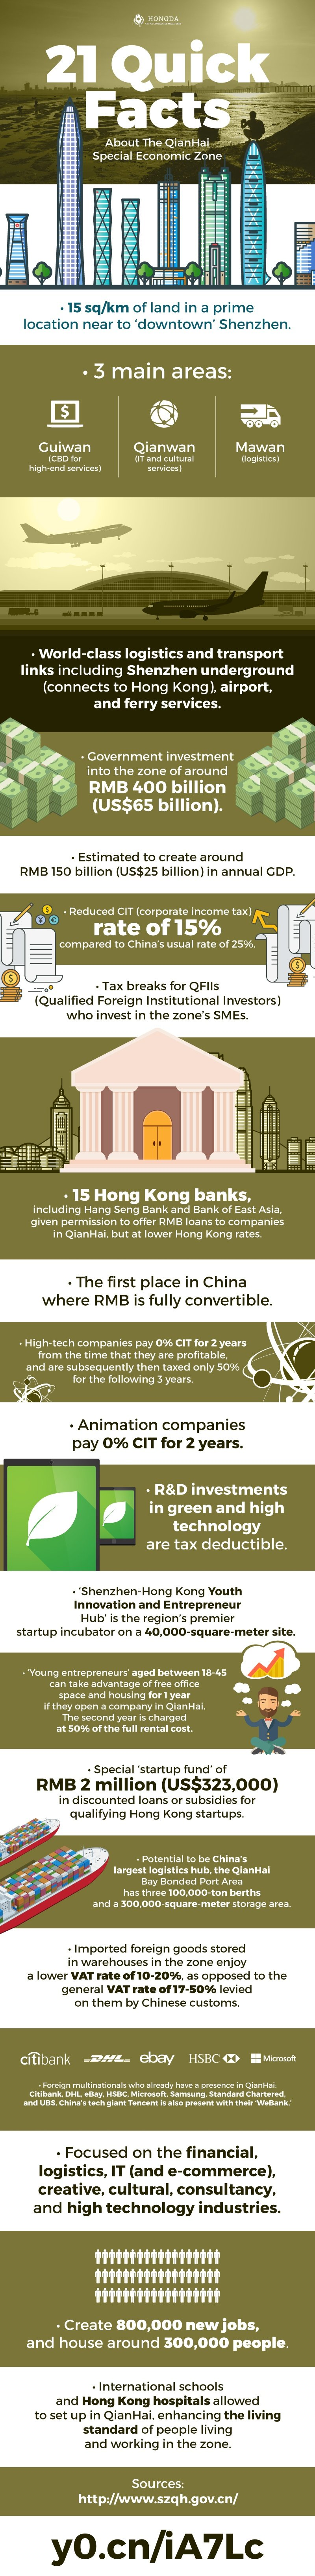 21 Quick Facts Behind the QianHai Special Economic Zone (infographic)